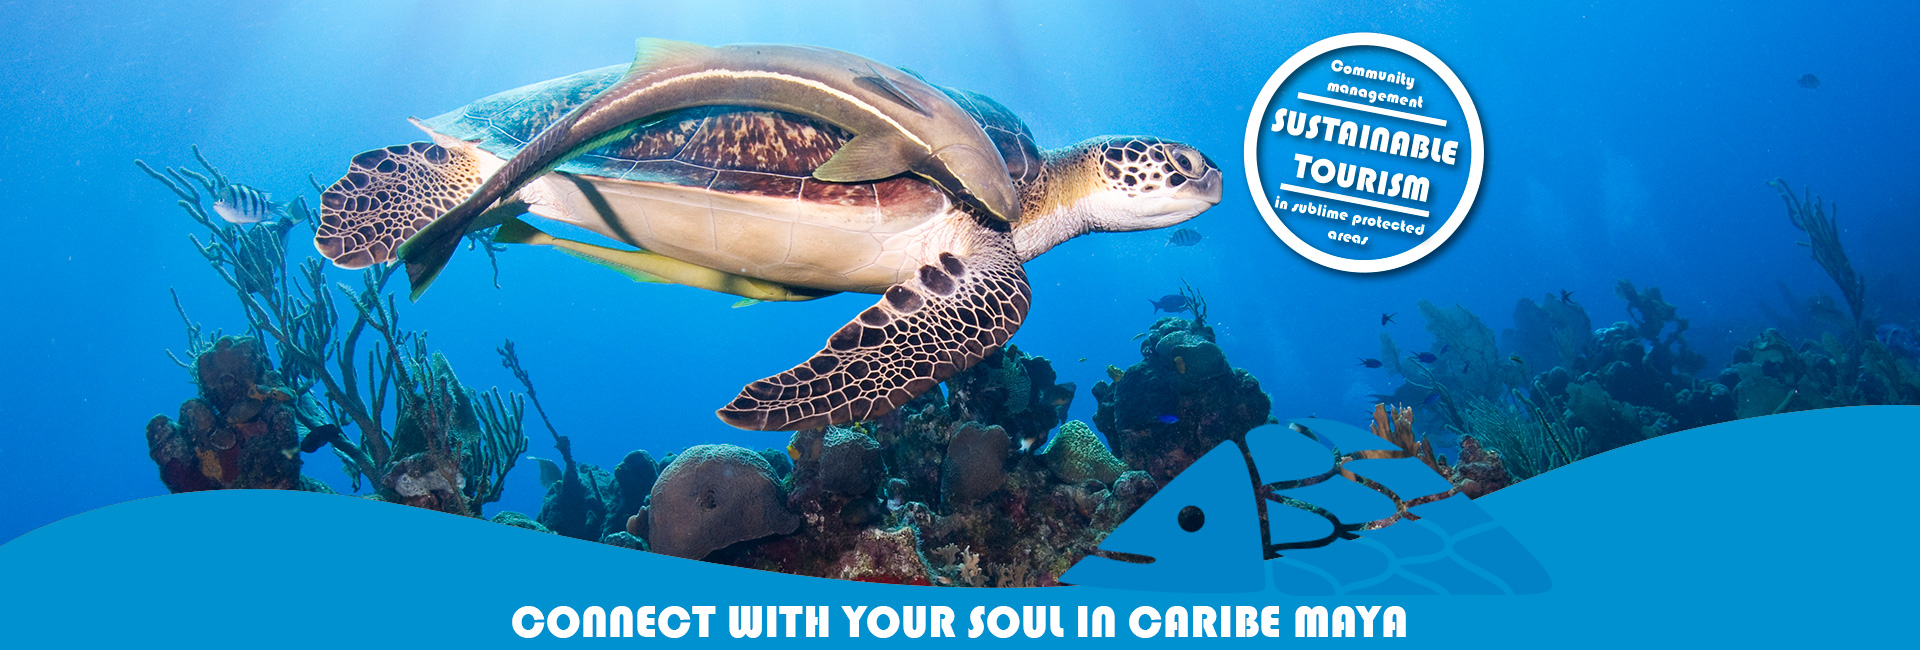 Connect your soul in Caribe Maya